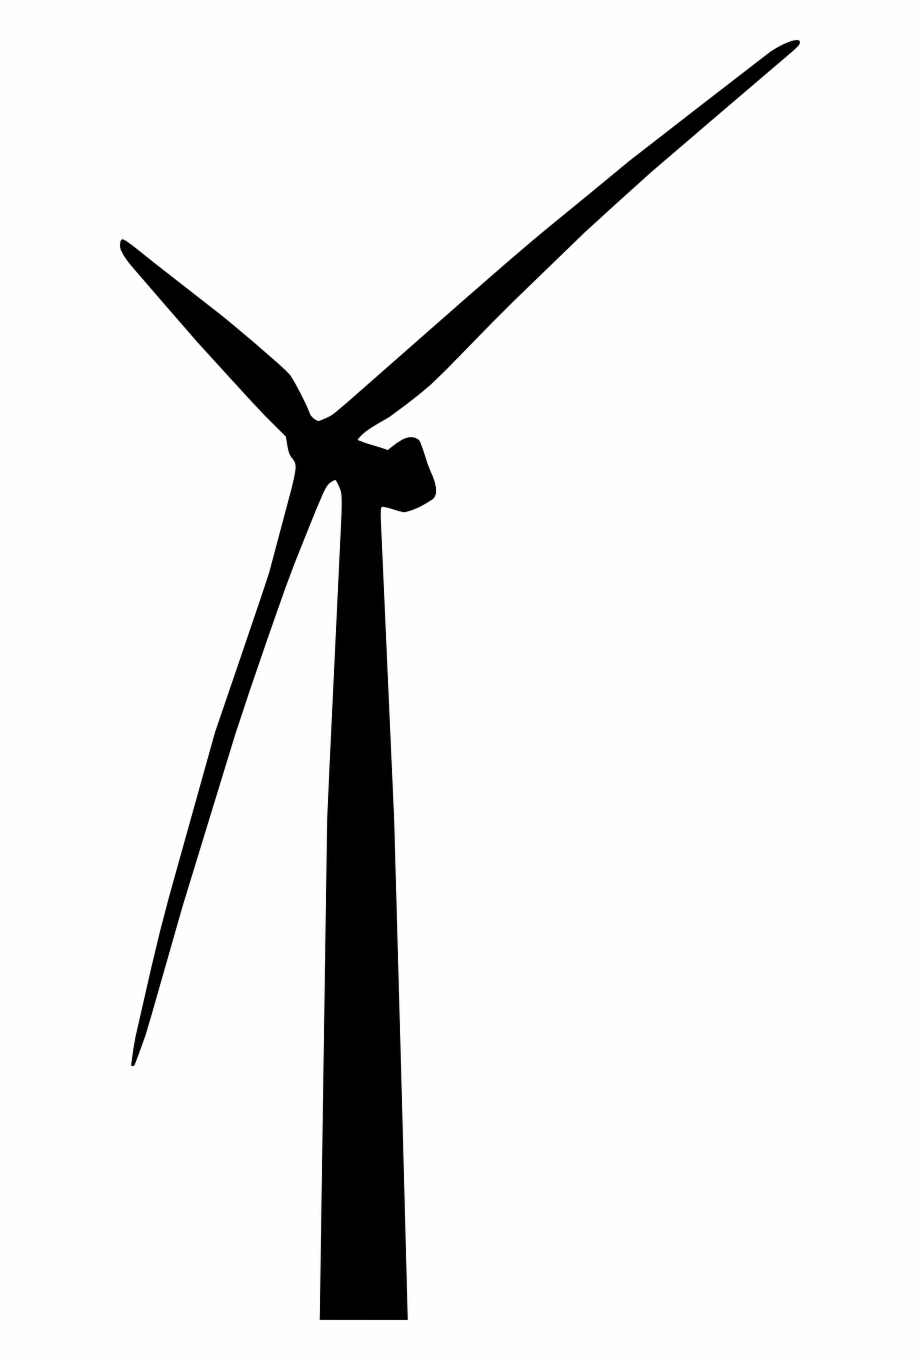 Wind Turbine Clip Art Free PNG Images & Clipart Download #2278588.